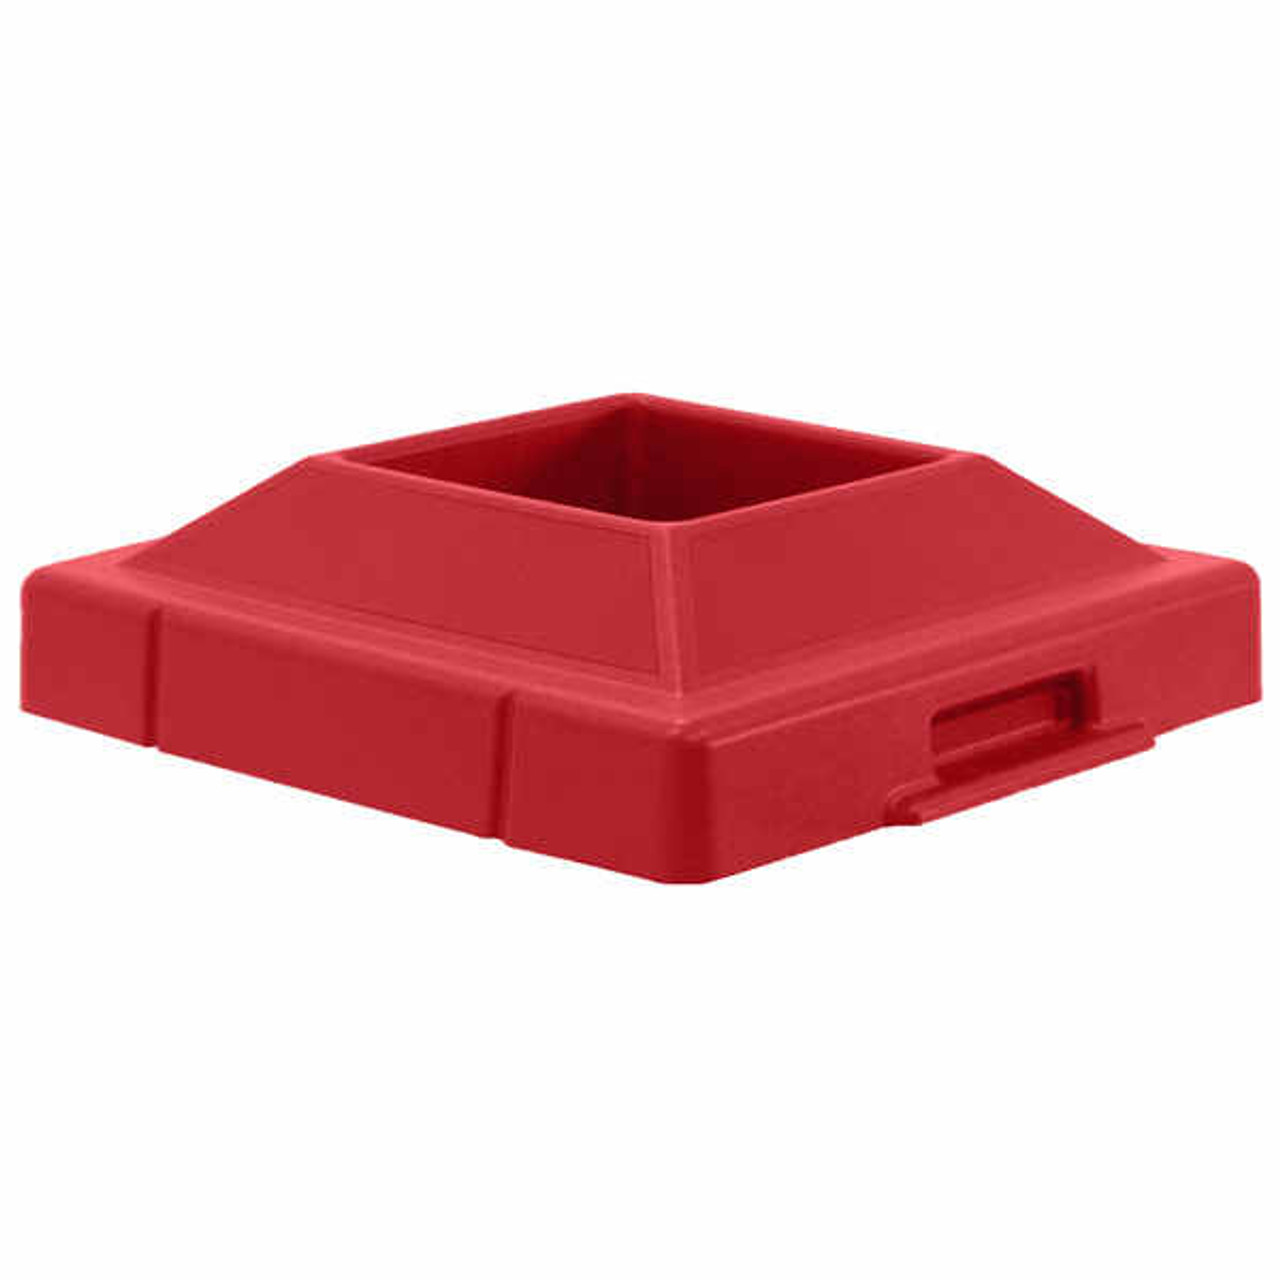 20.5 x 20.5 Pitch In Plastic Lids TF1420 for Square Trash Cans Red